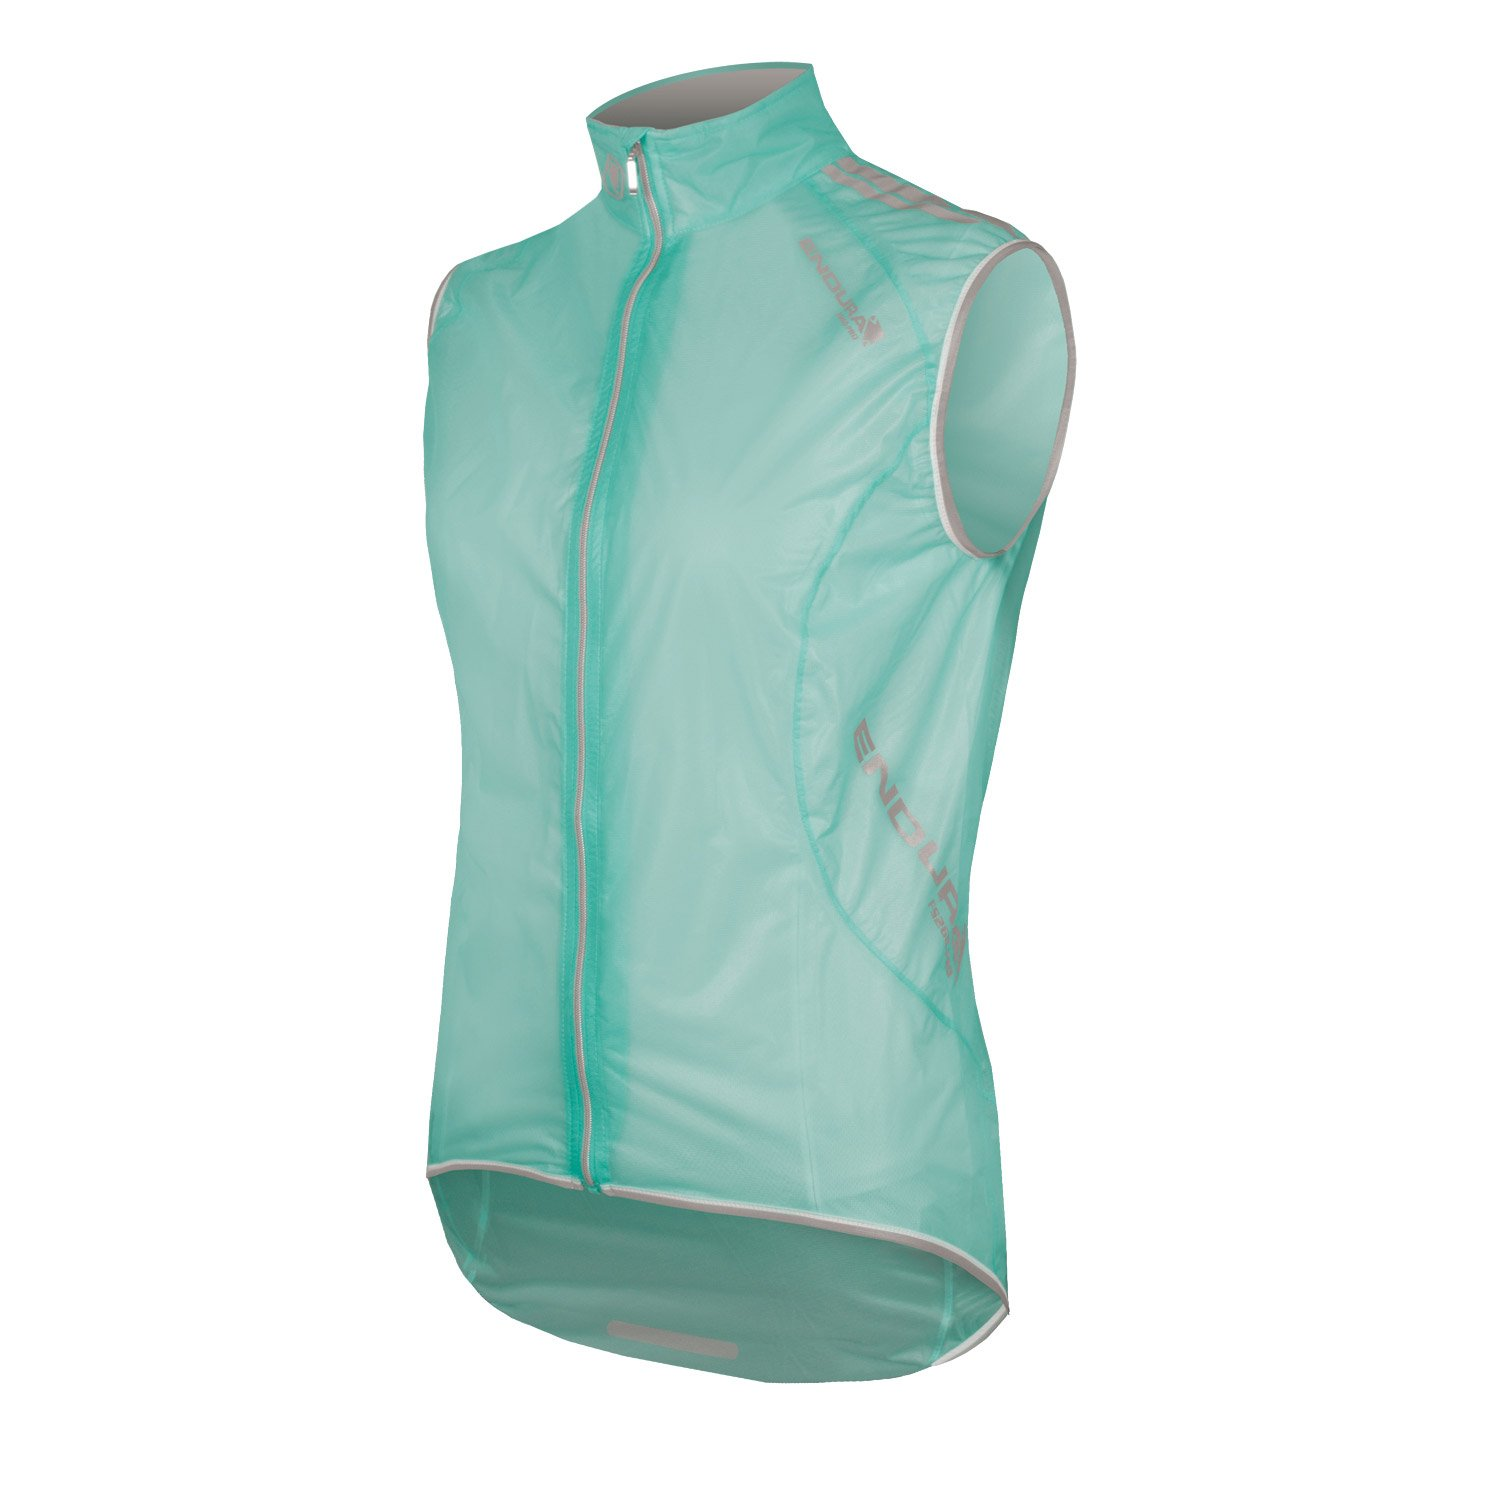 Endura Womens FS260-Pro Adrenaline Cycling Gilet Translucent Turquoise, Small